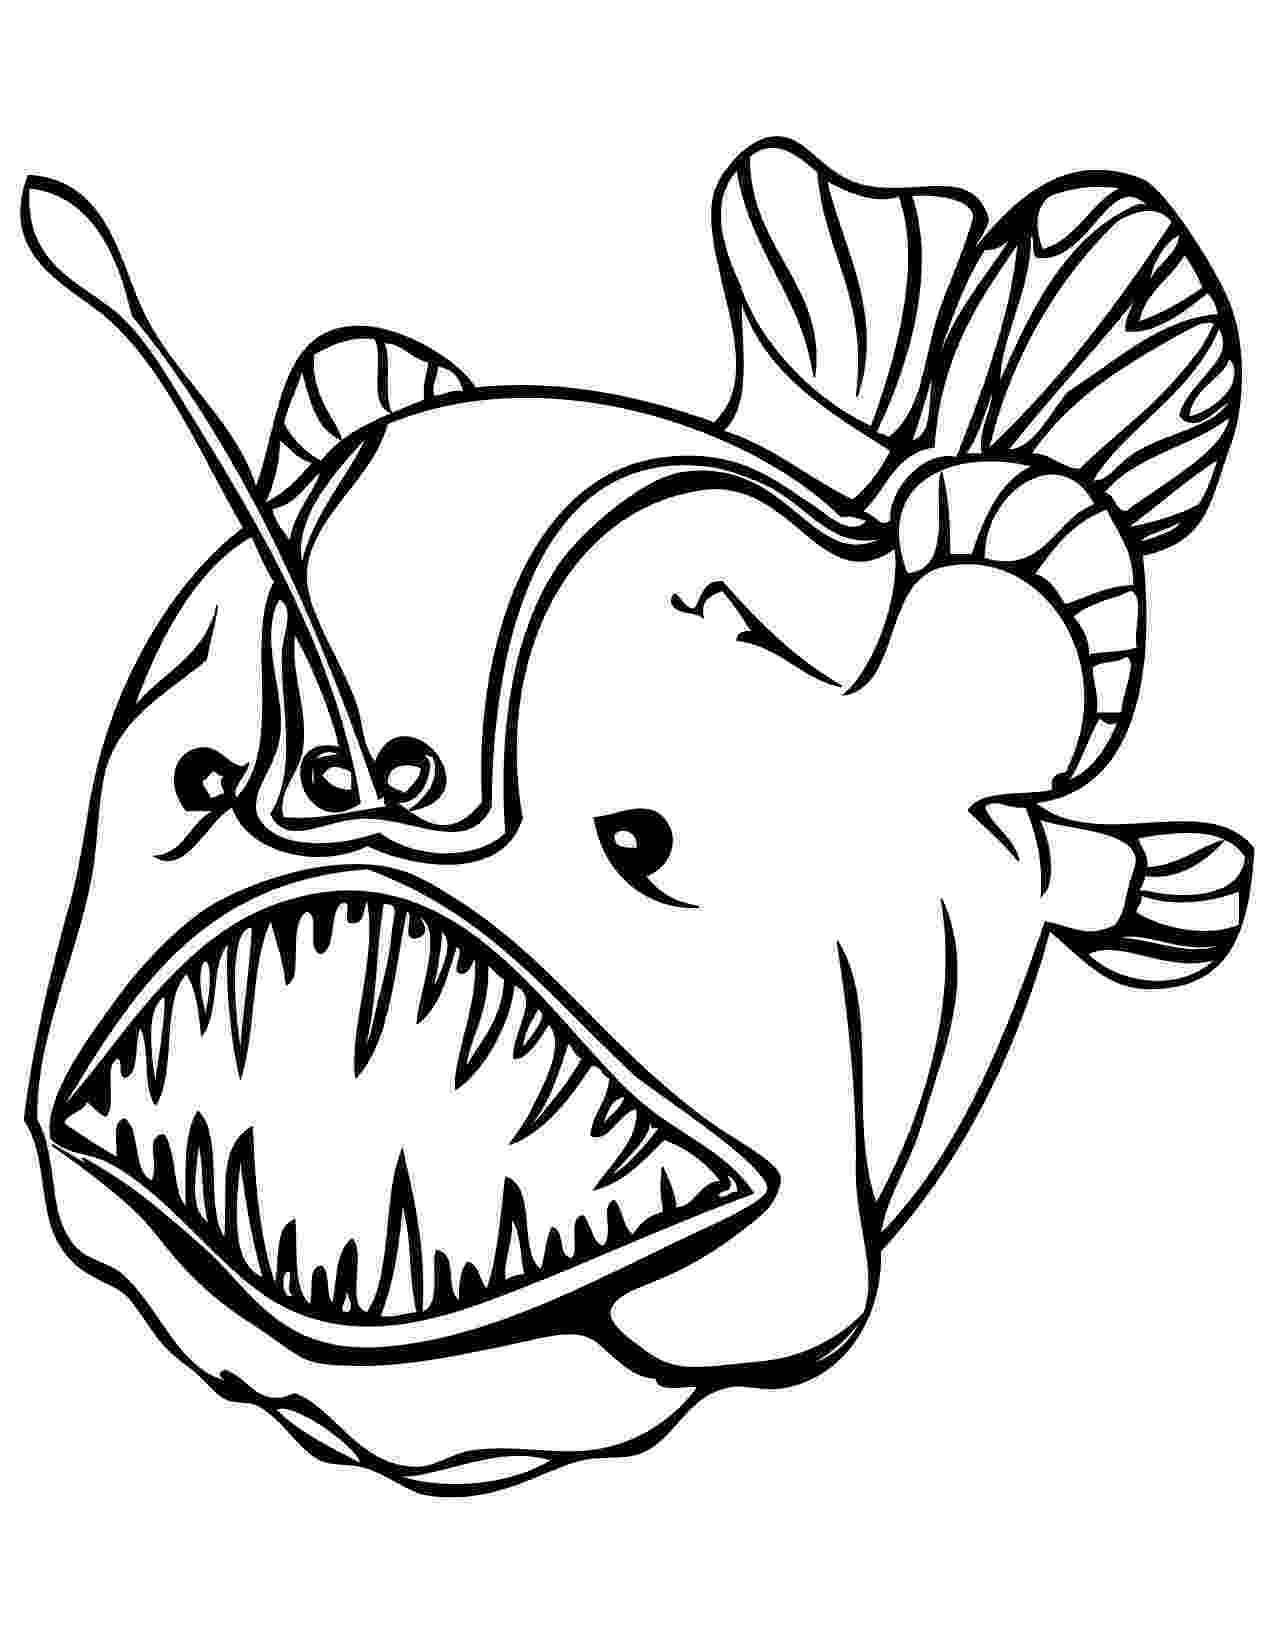 fishing coloring pages printable fish coloring pages fishing printable coloring pages